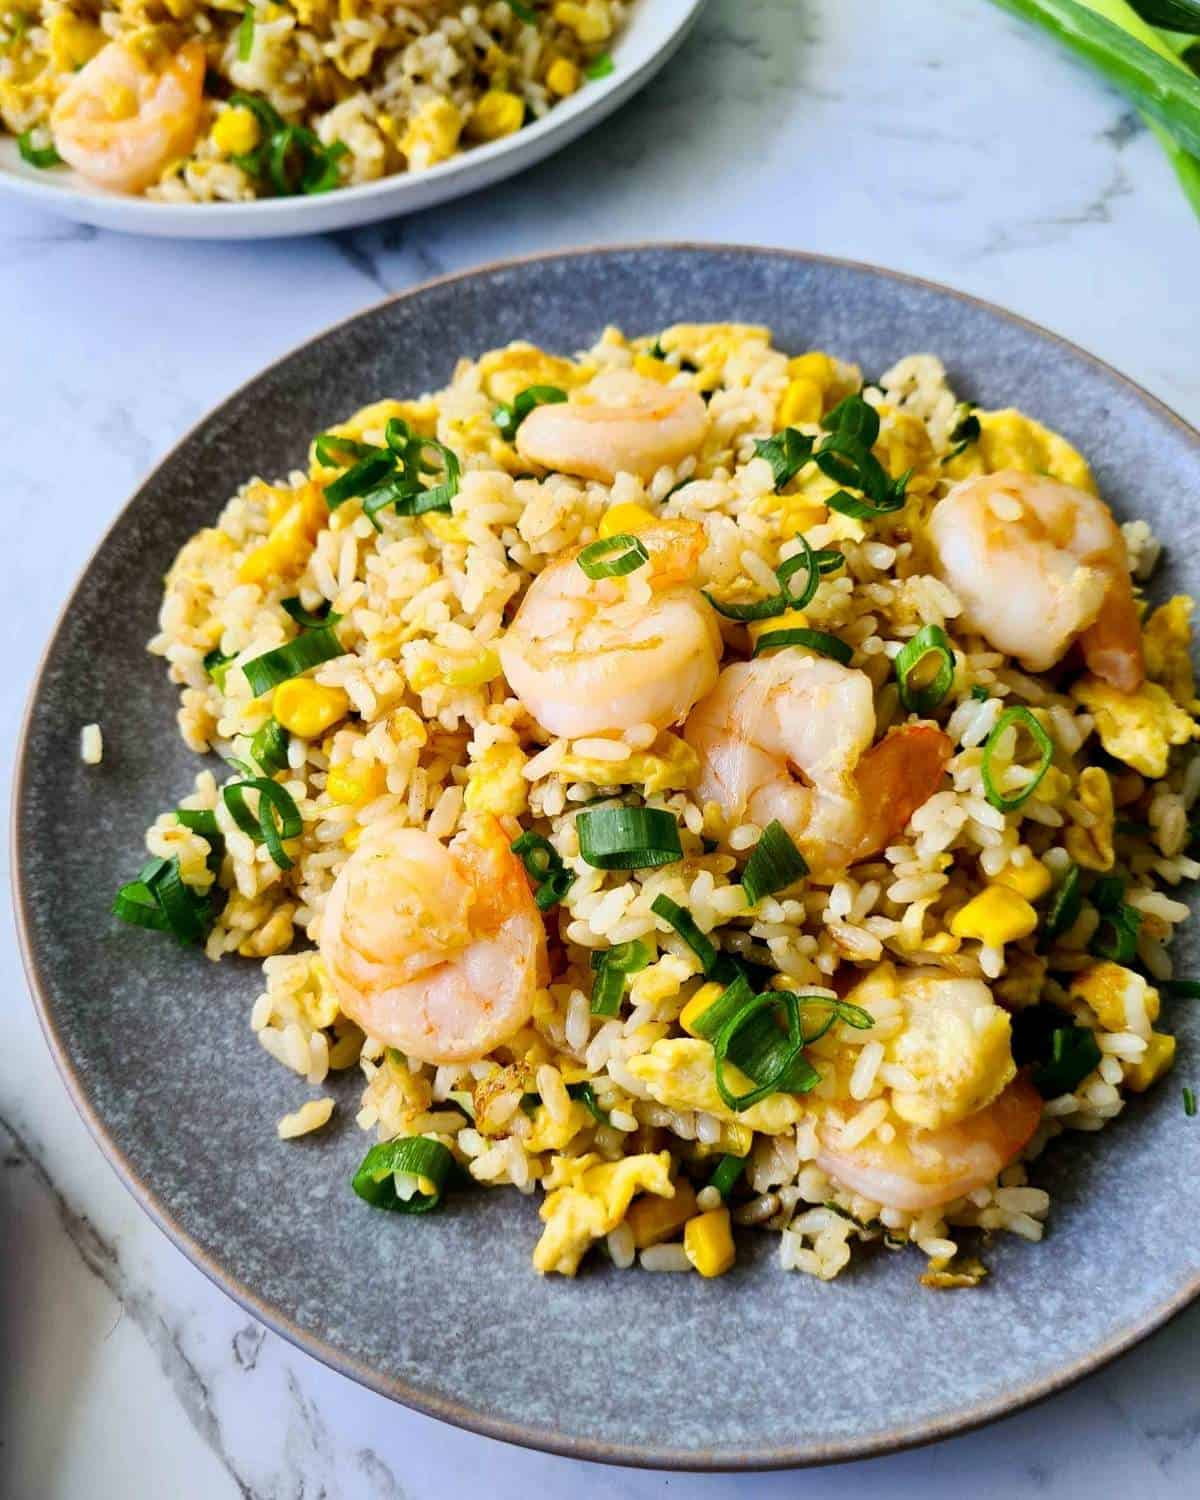 Side view of a plate of prawn/shrimp fried rice